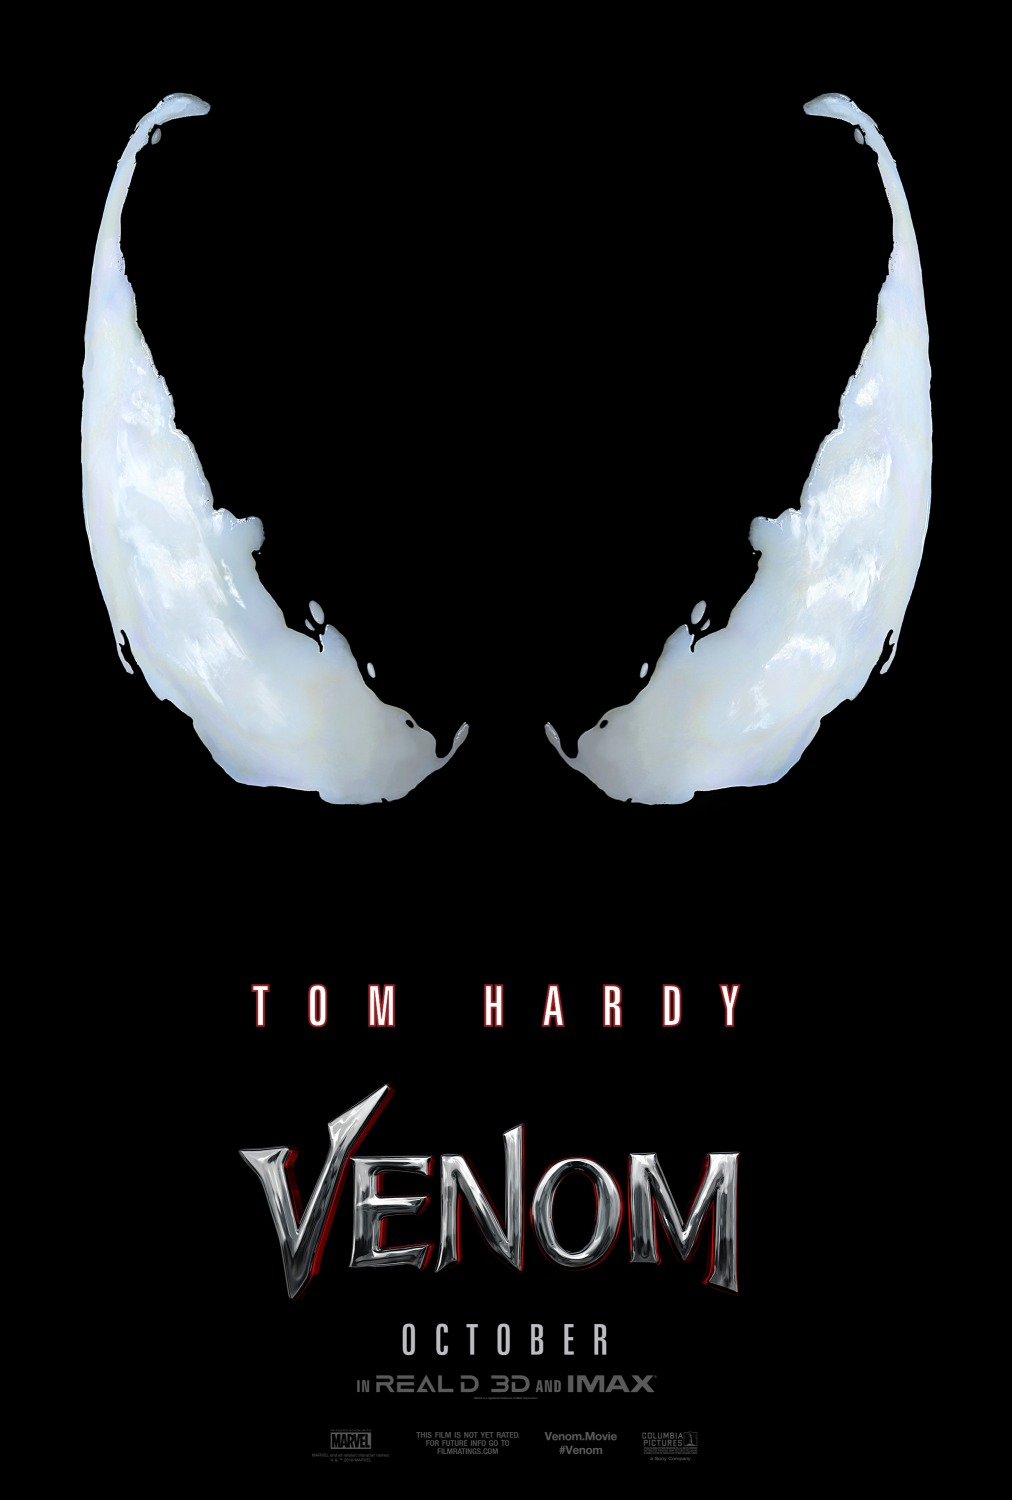 68 venom movie poster